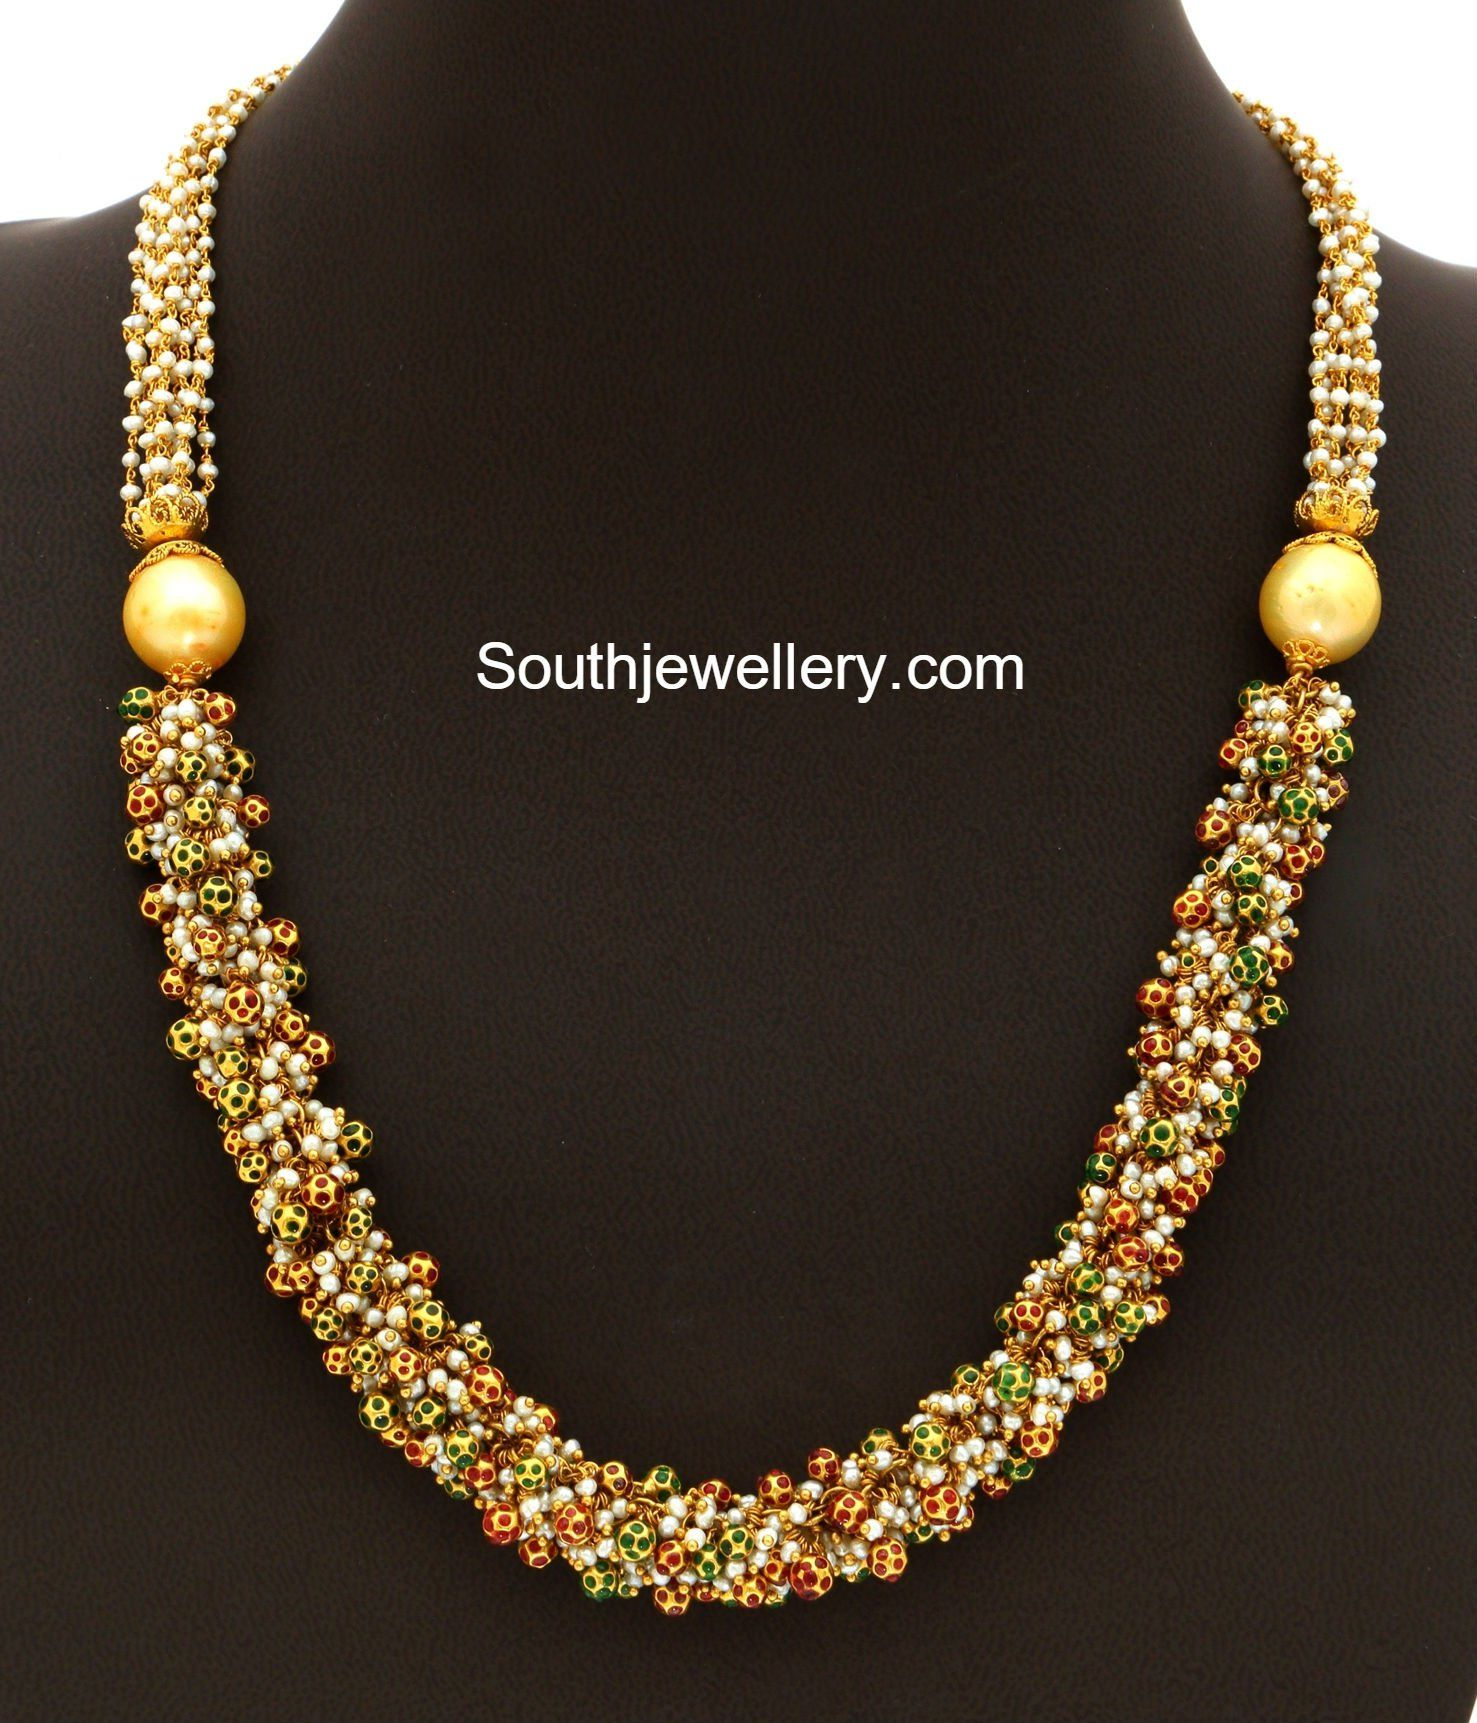 22 carat gold floral designer pendant with multiple beads chain and - Gold Pearls Mala